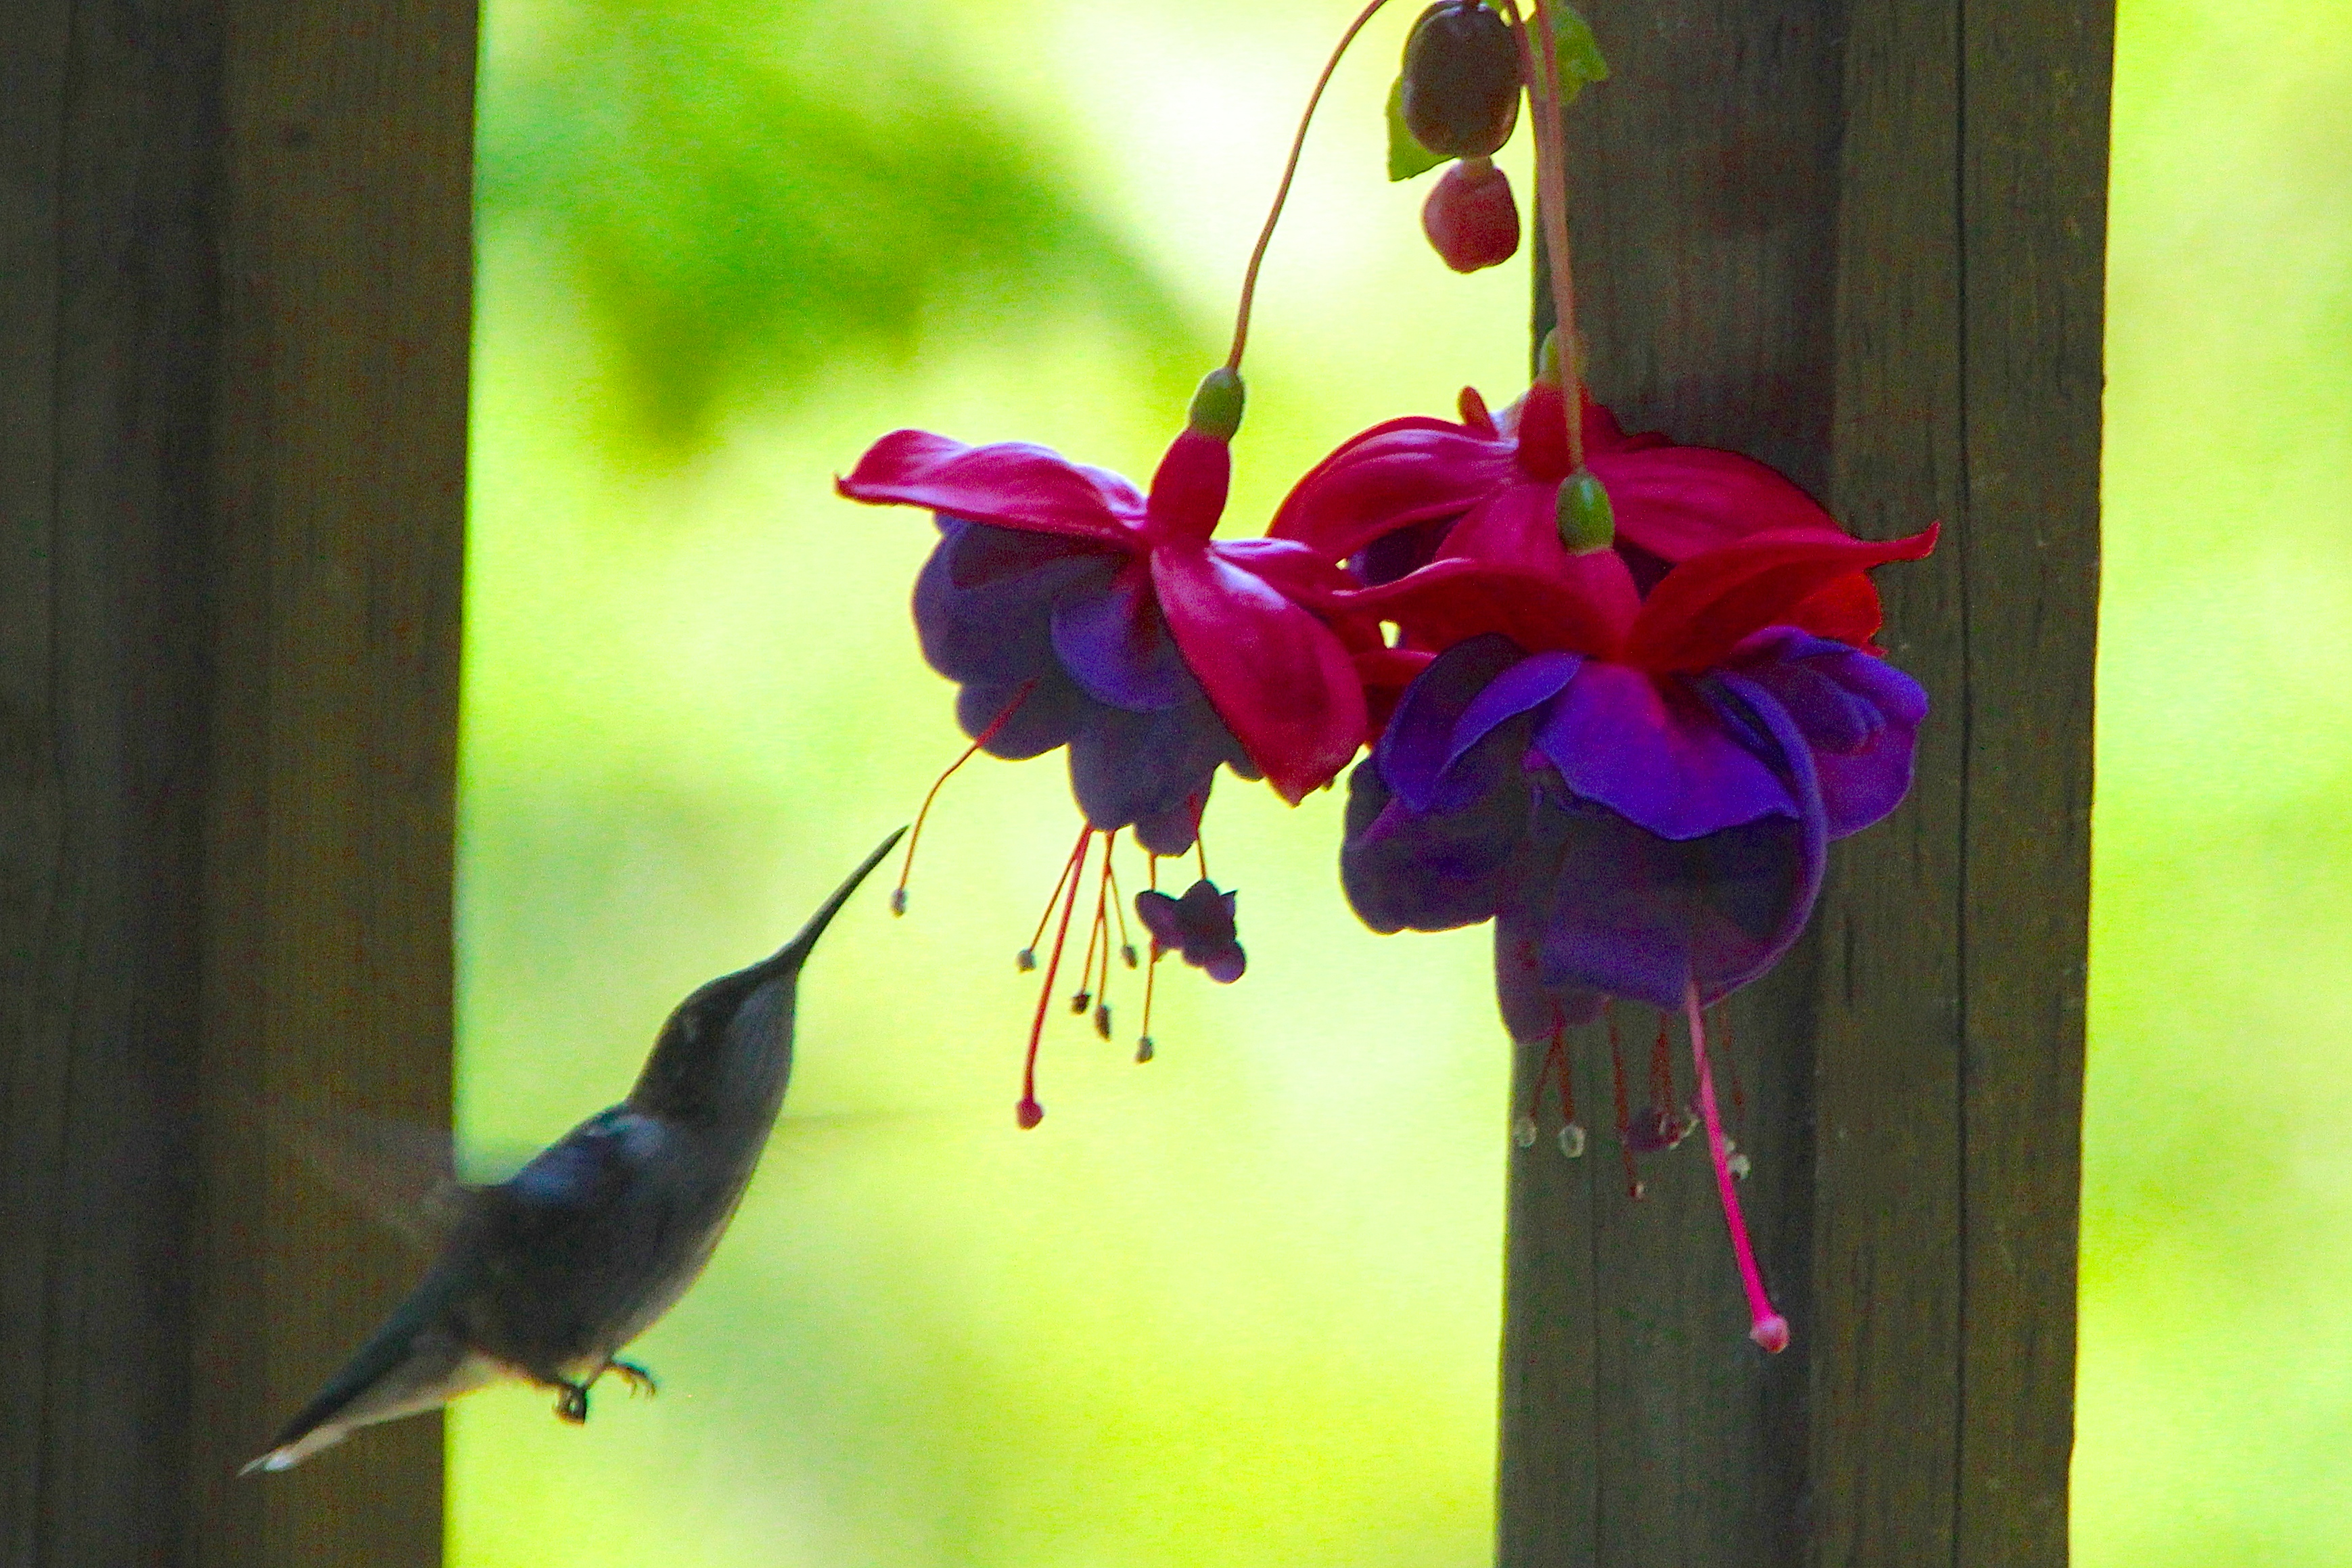 Identifying Ruby throated hummingbirds photos of hummingbirds information a